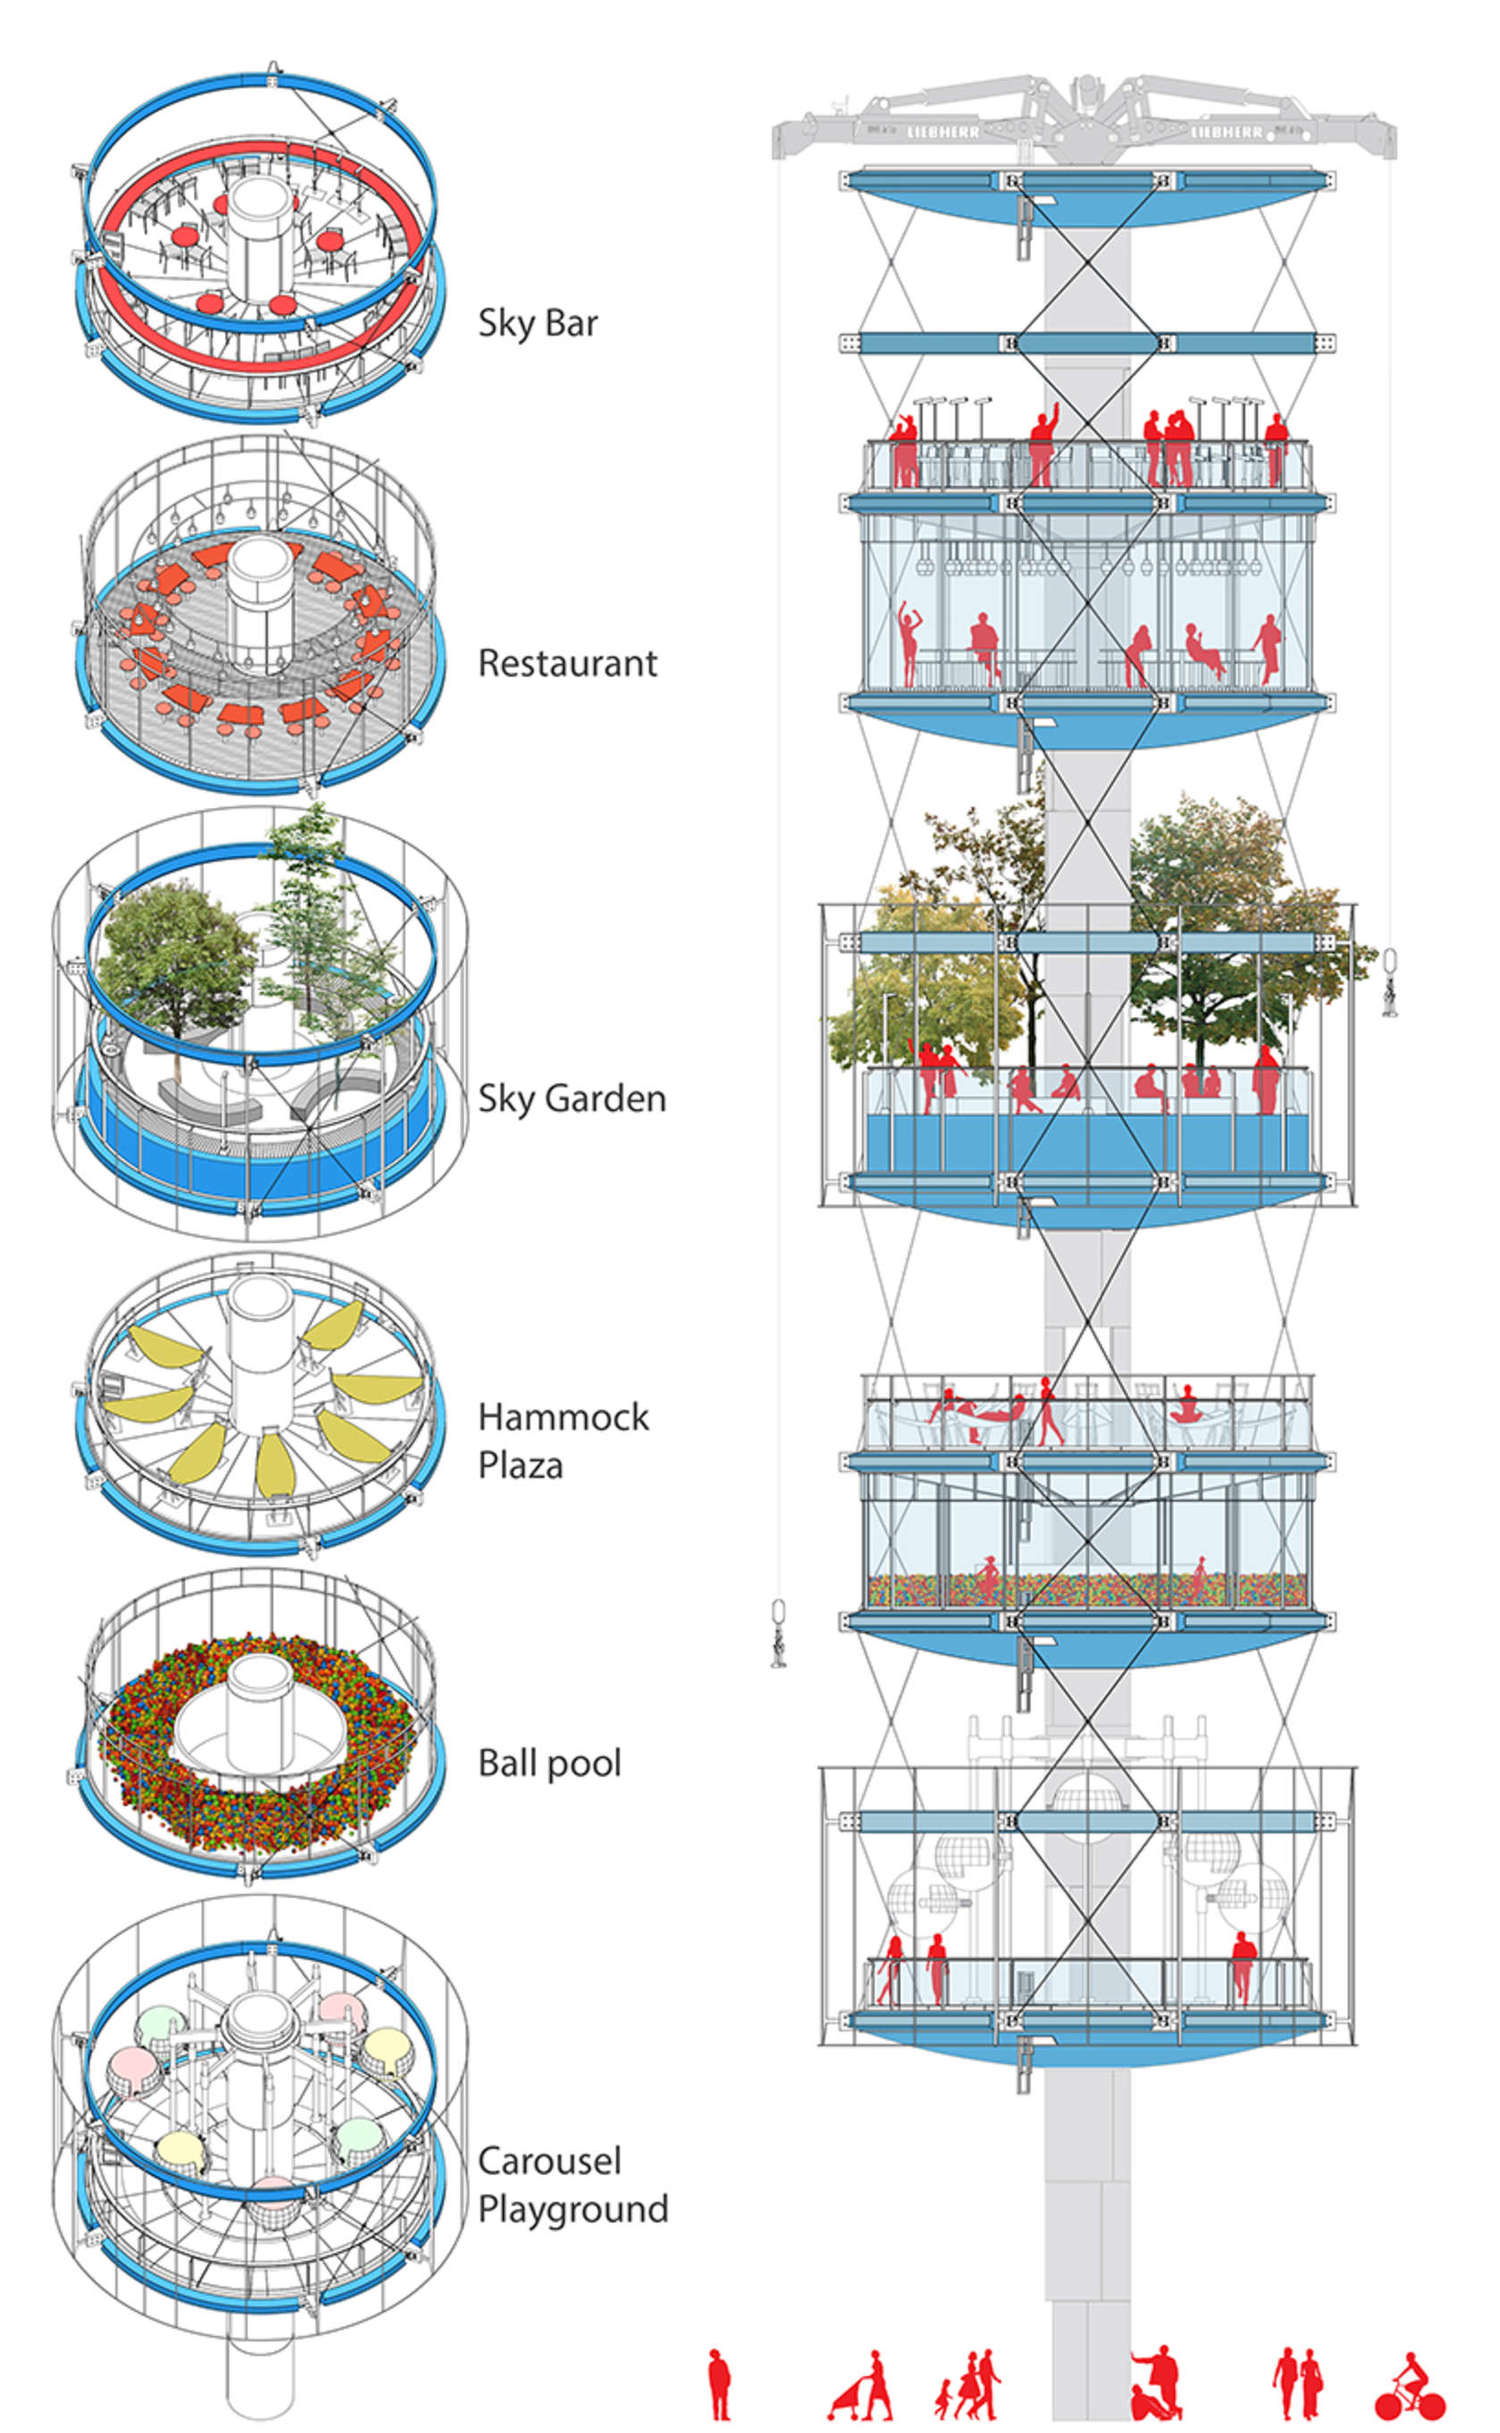 100architects envision their vertical park as both a commercial and public project.